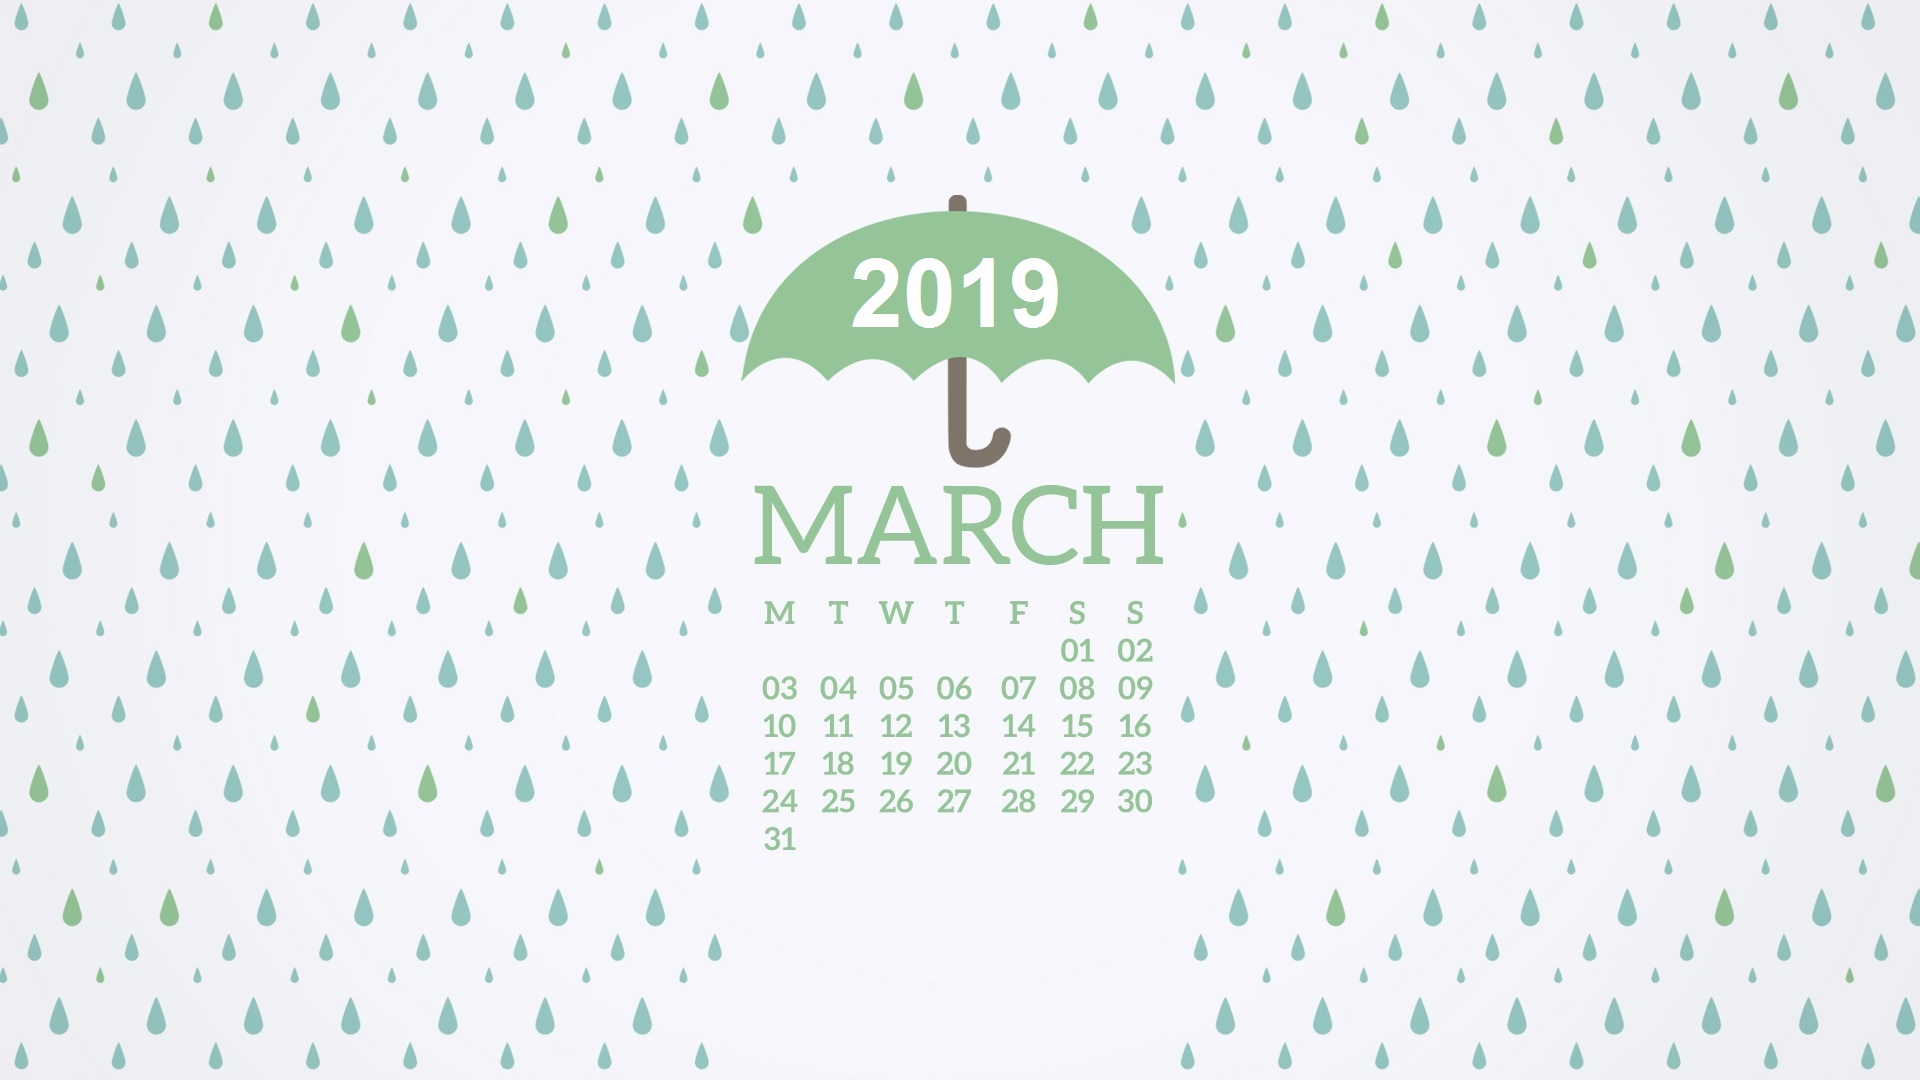 2019 March Calendar Wallpaper